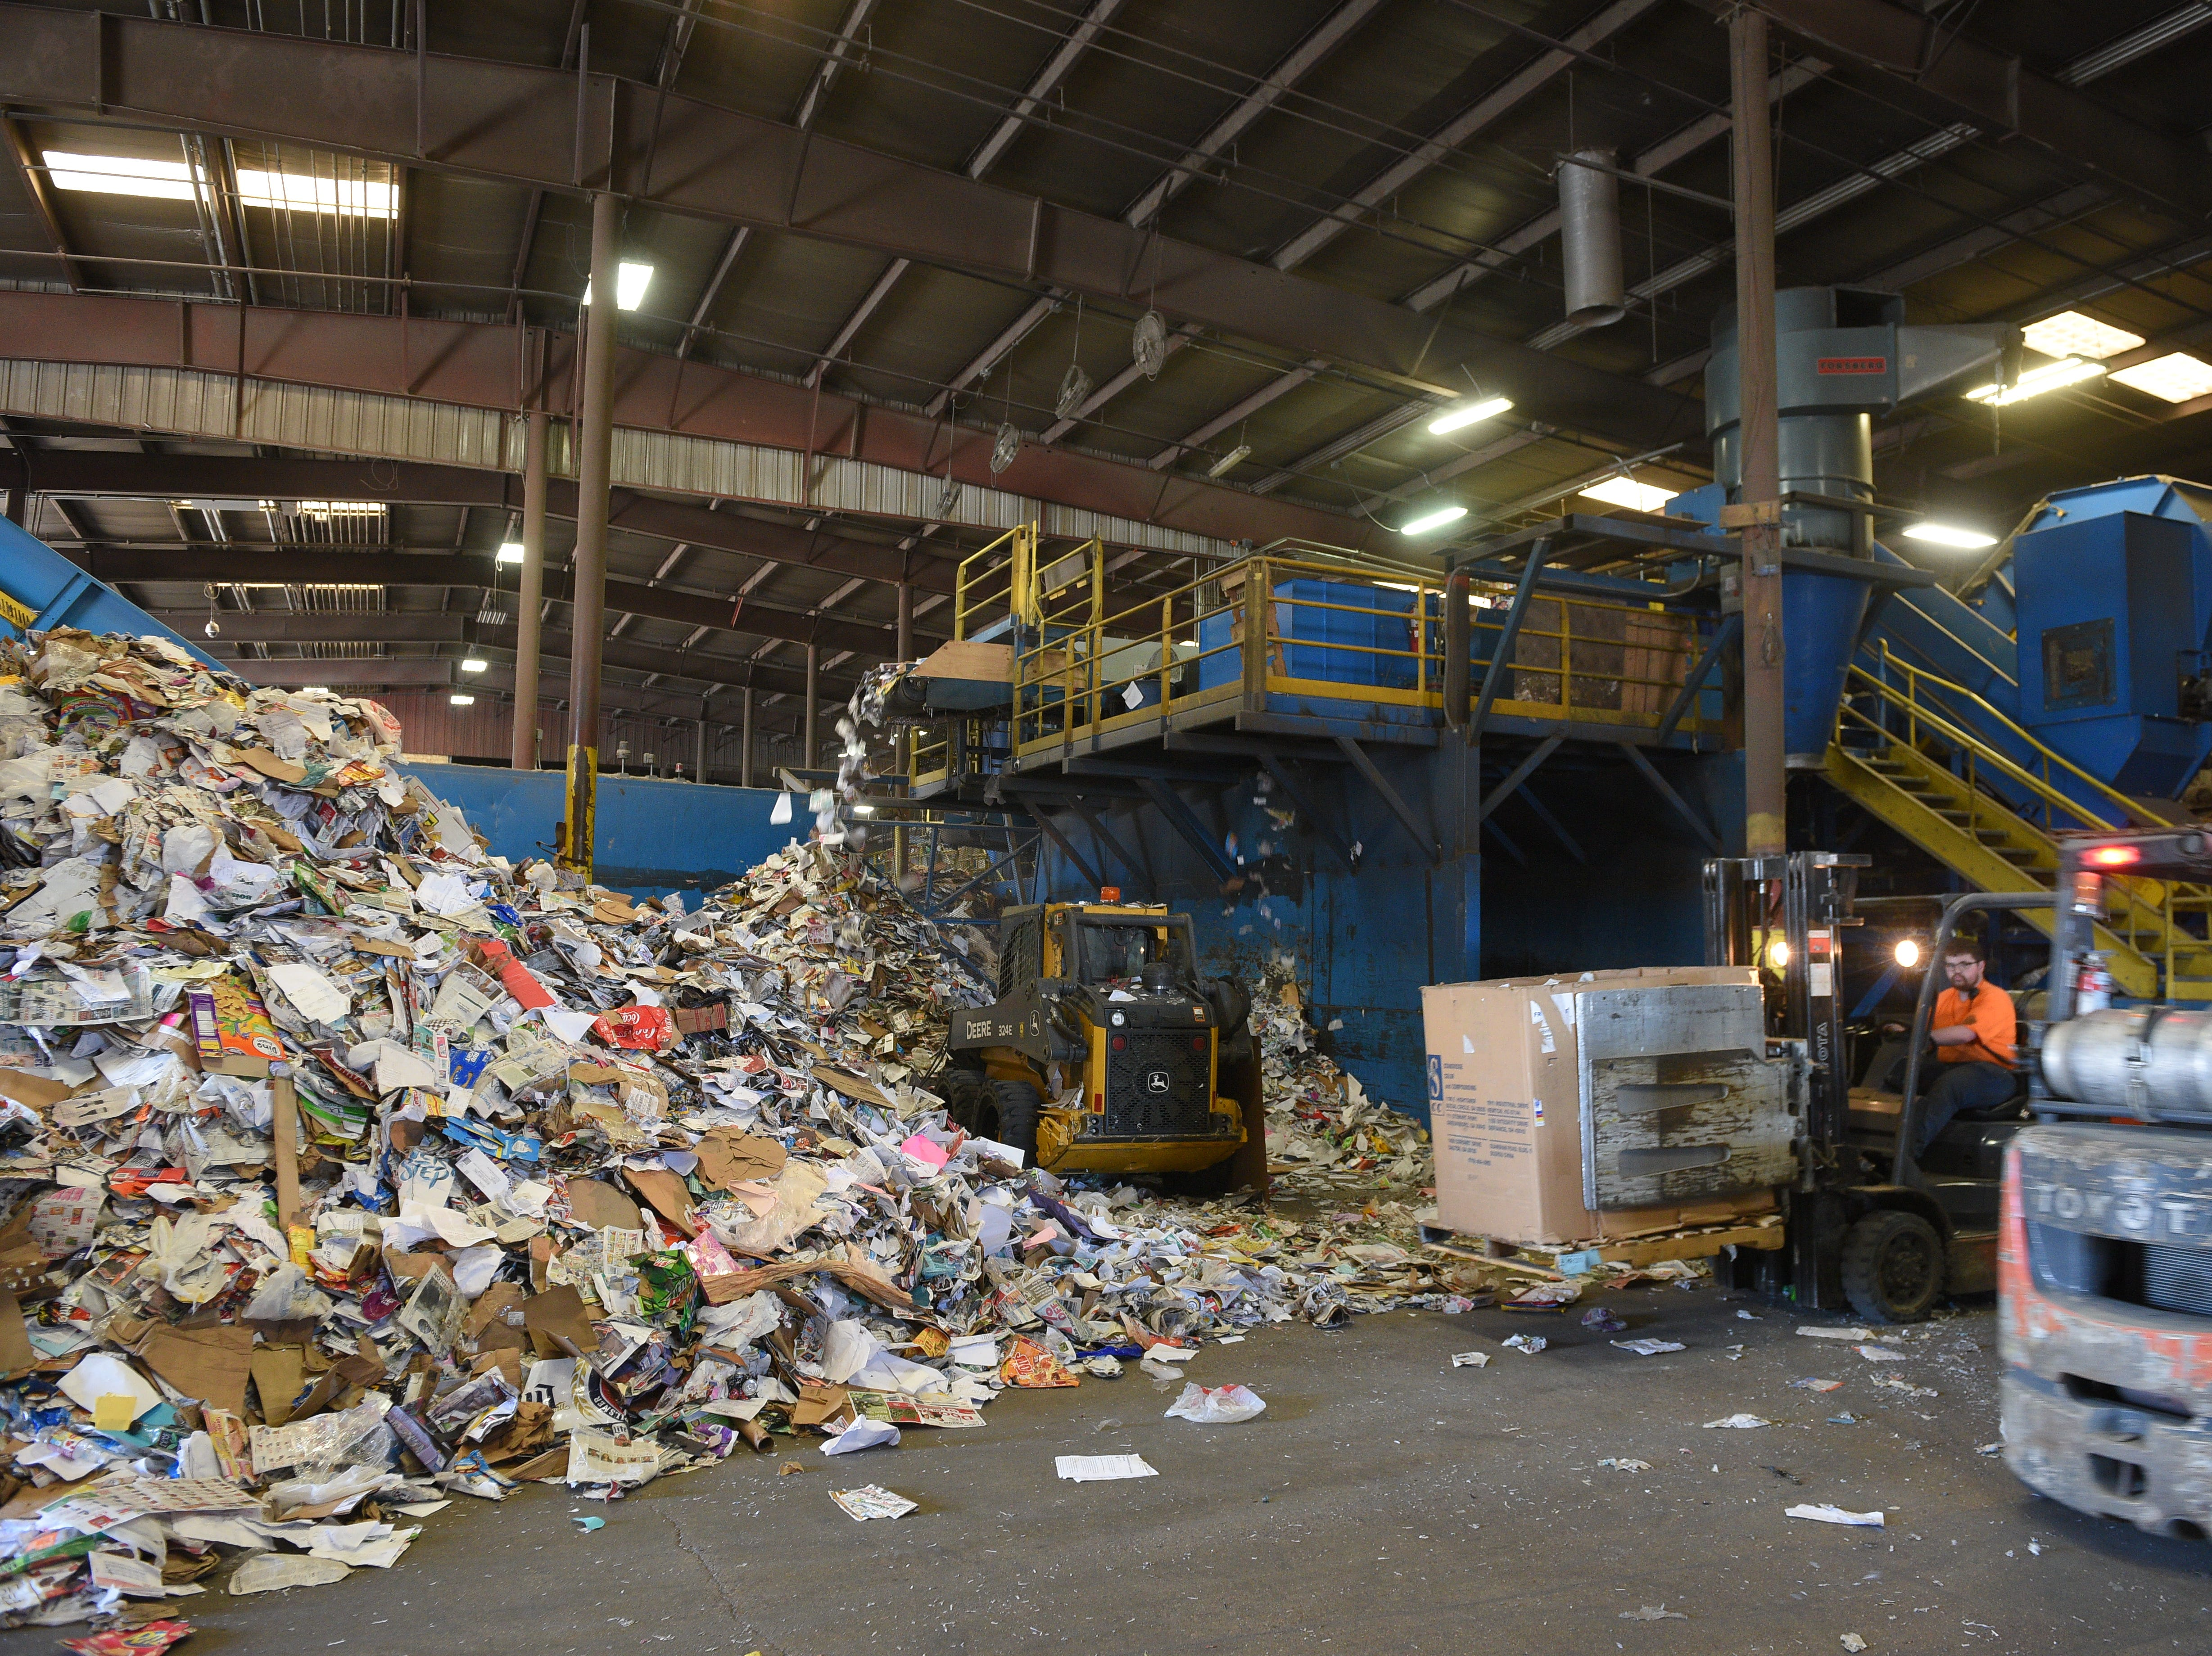 Recycleable materials rest in a pile after going through Millennium Recycling's single-stream sorter.